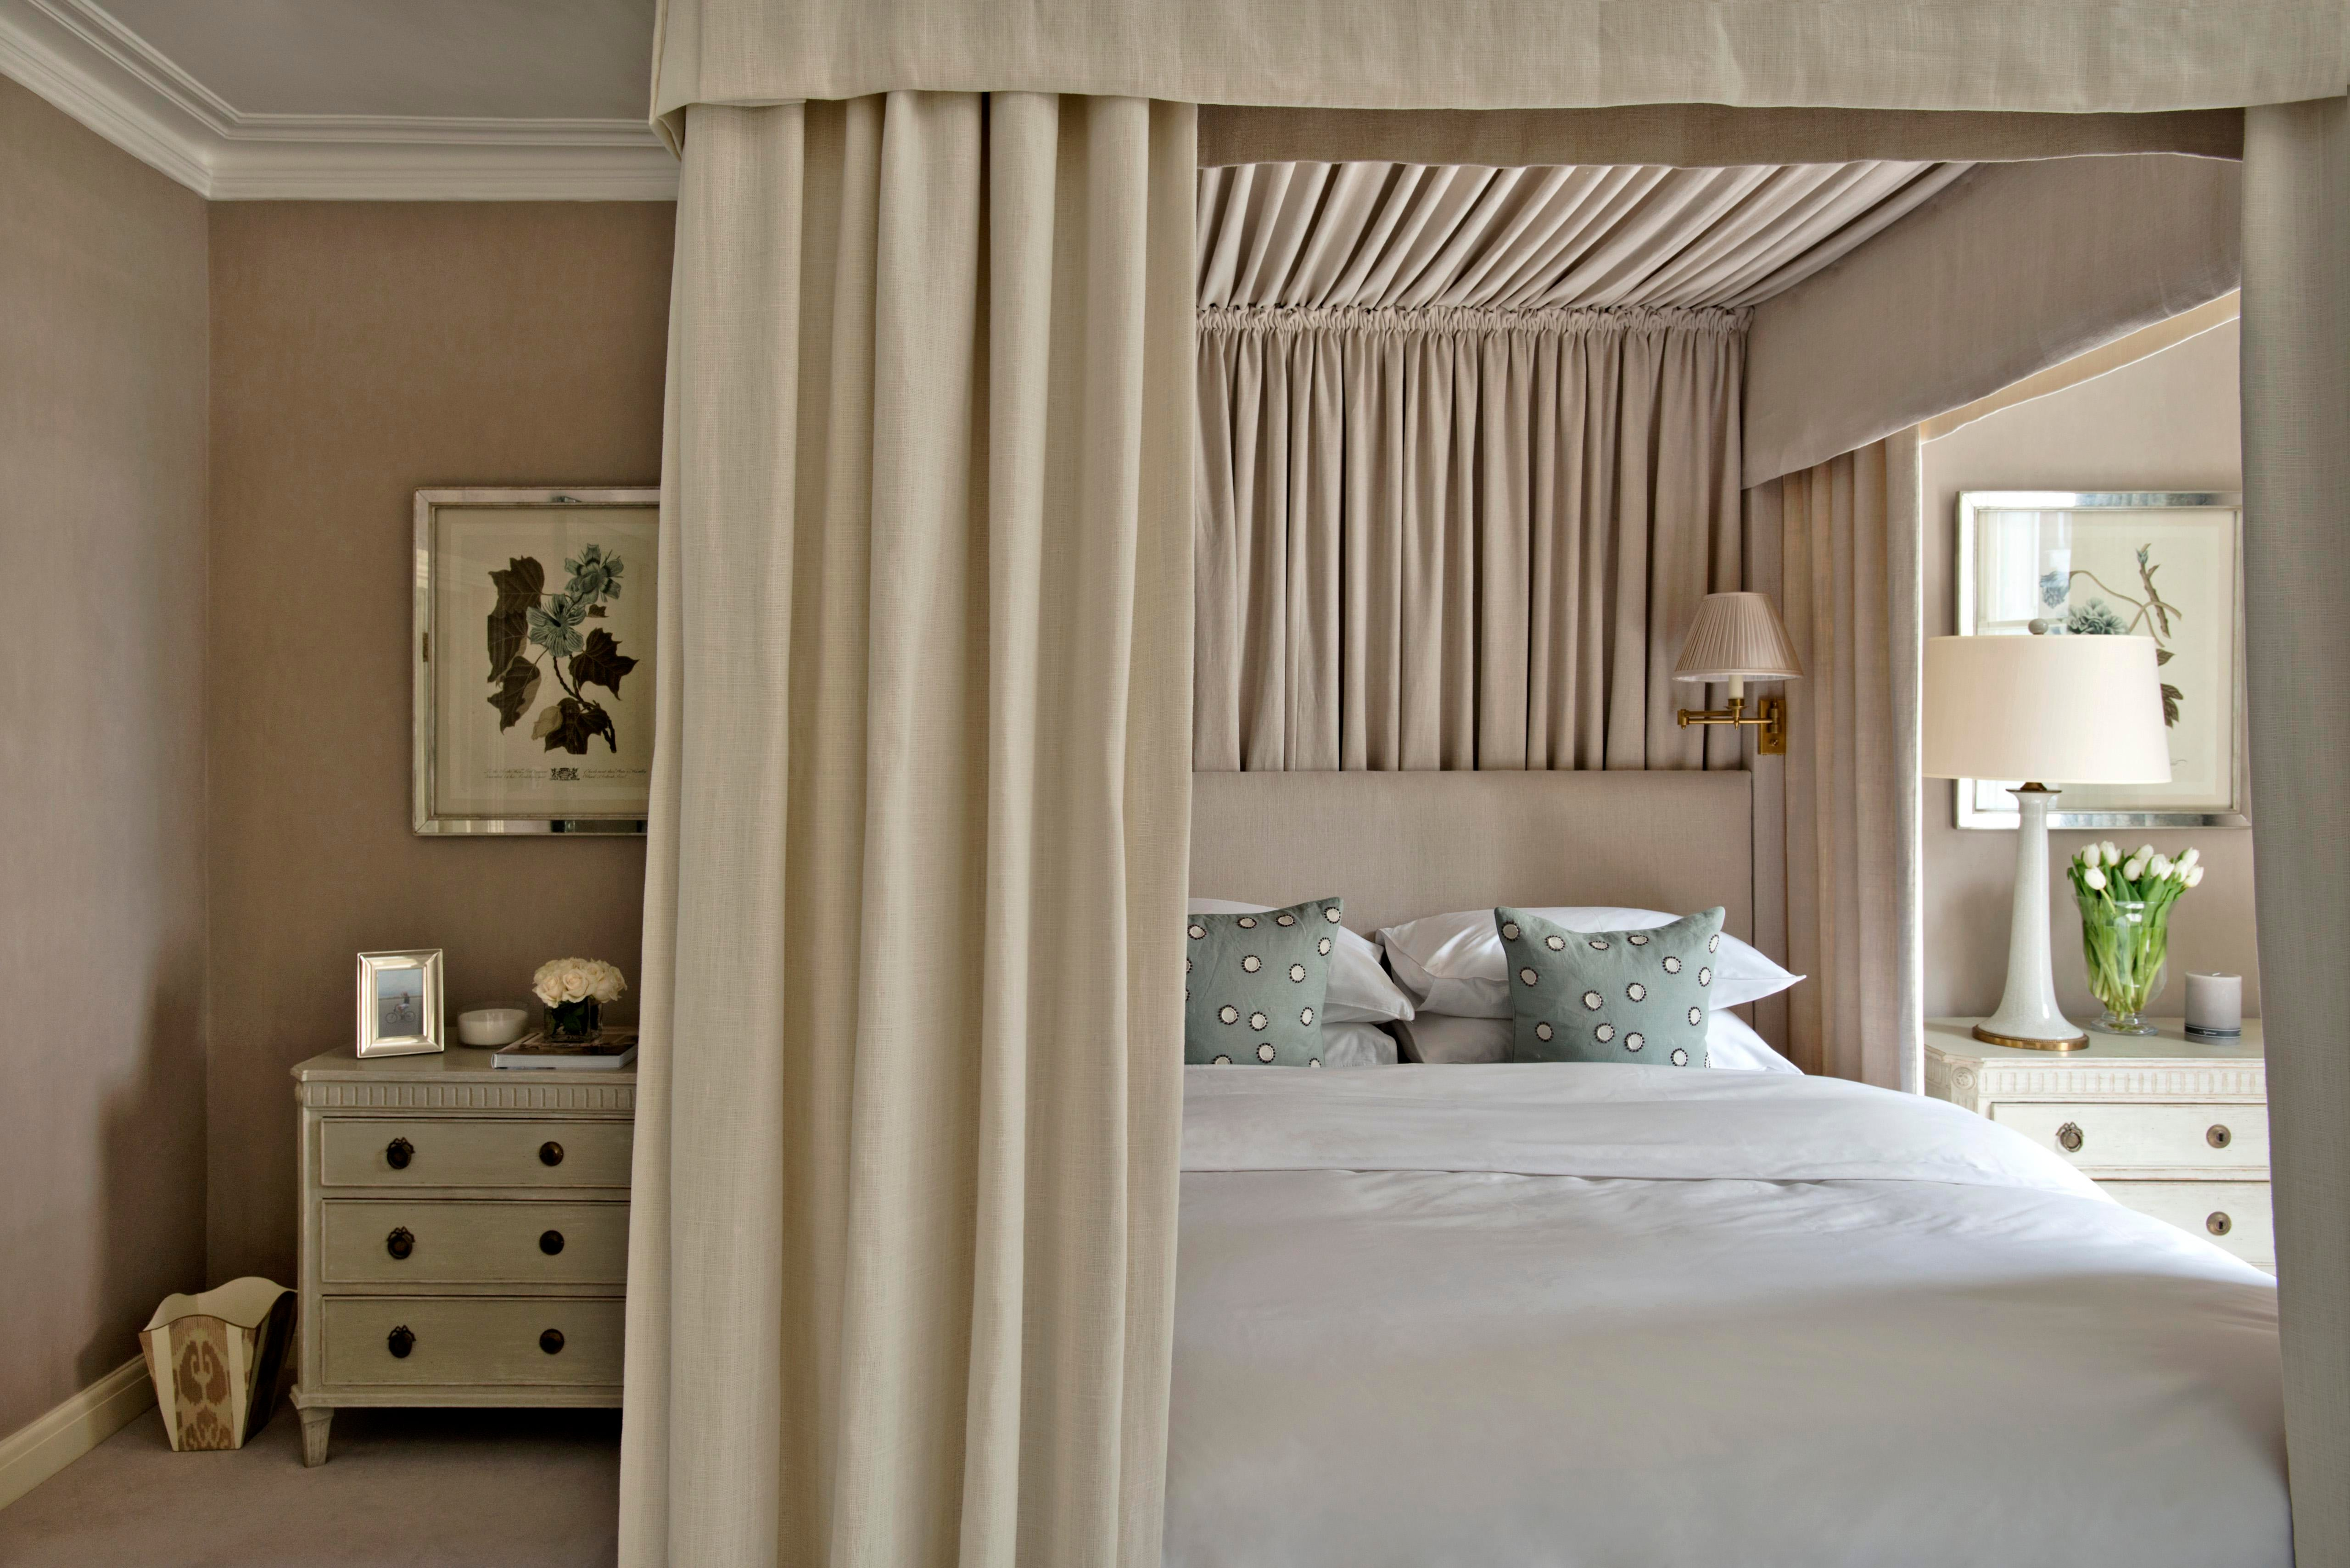 london townhouse guest bedroom by sims hilditch lookbook dering hall rh deringhall com Townhouse Russet Bedrooms Townhouse Floor Plans